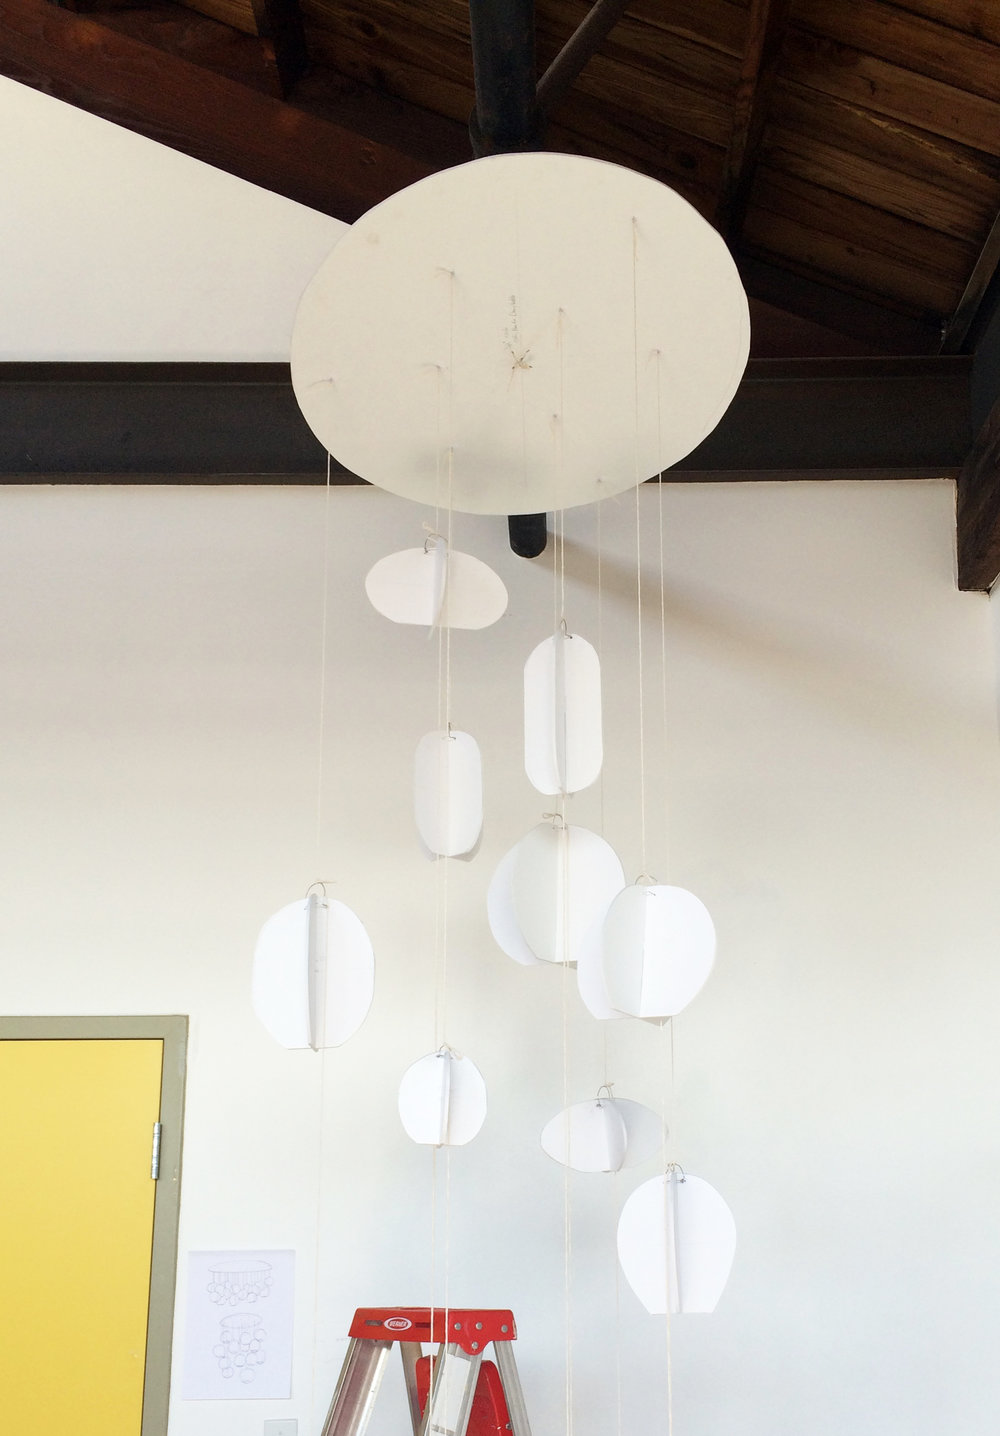 Foam Model of Chandelier